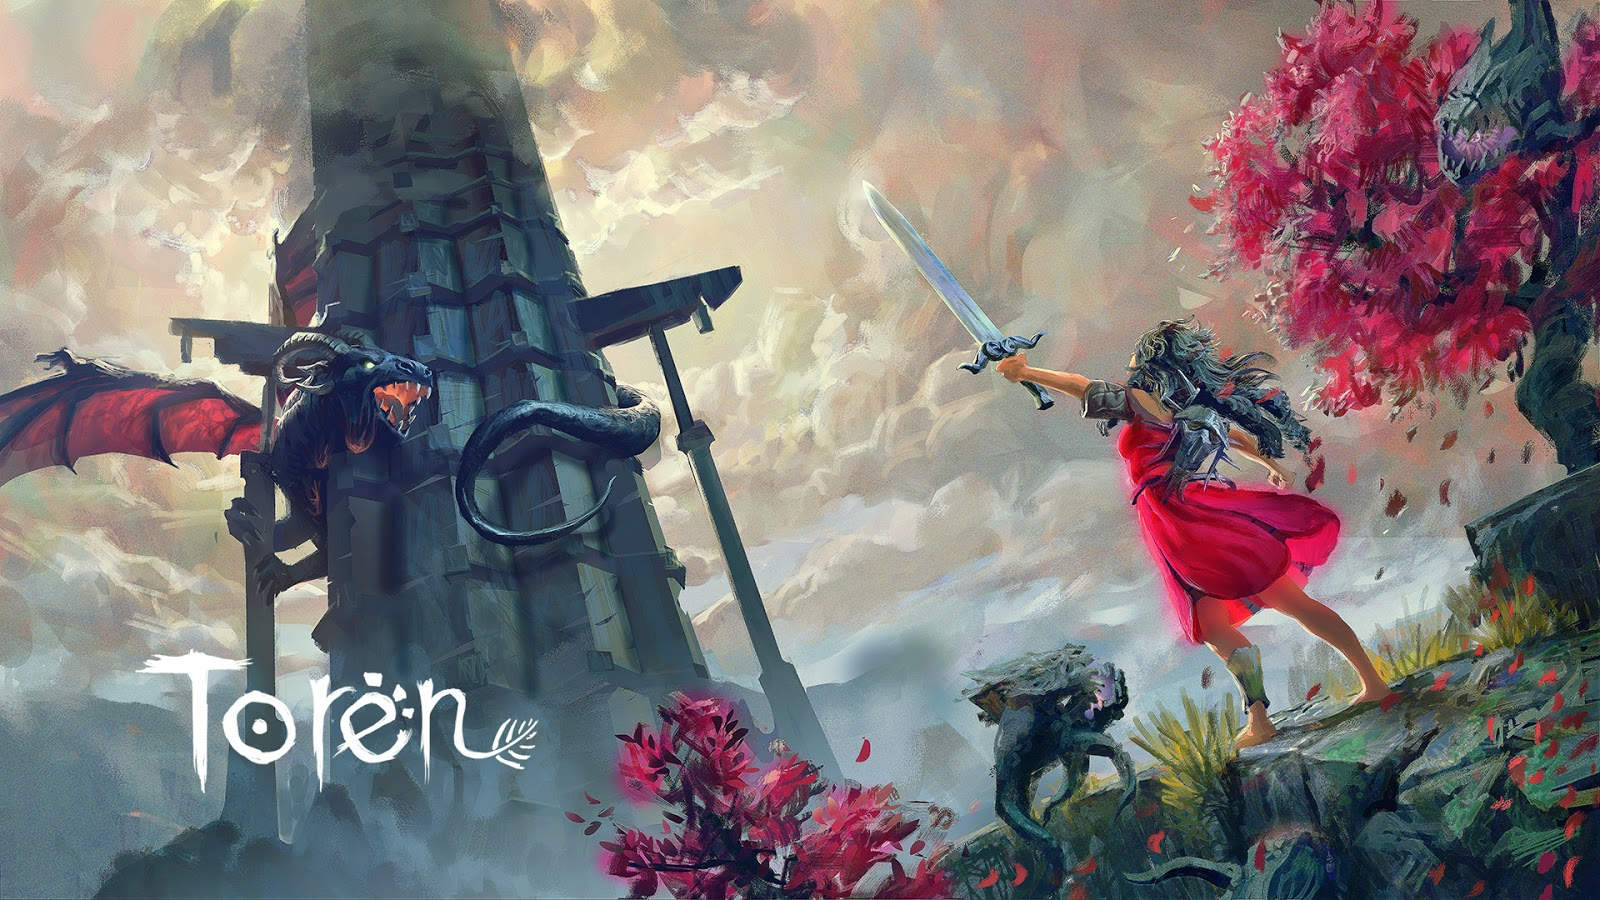 Toren PC Game Free Download PC Games